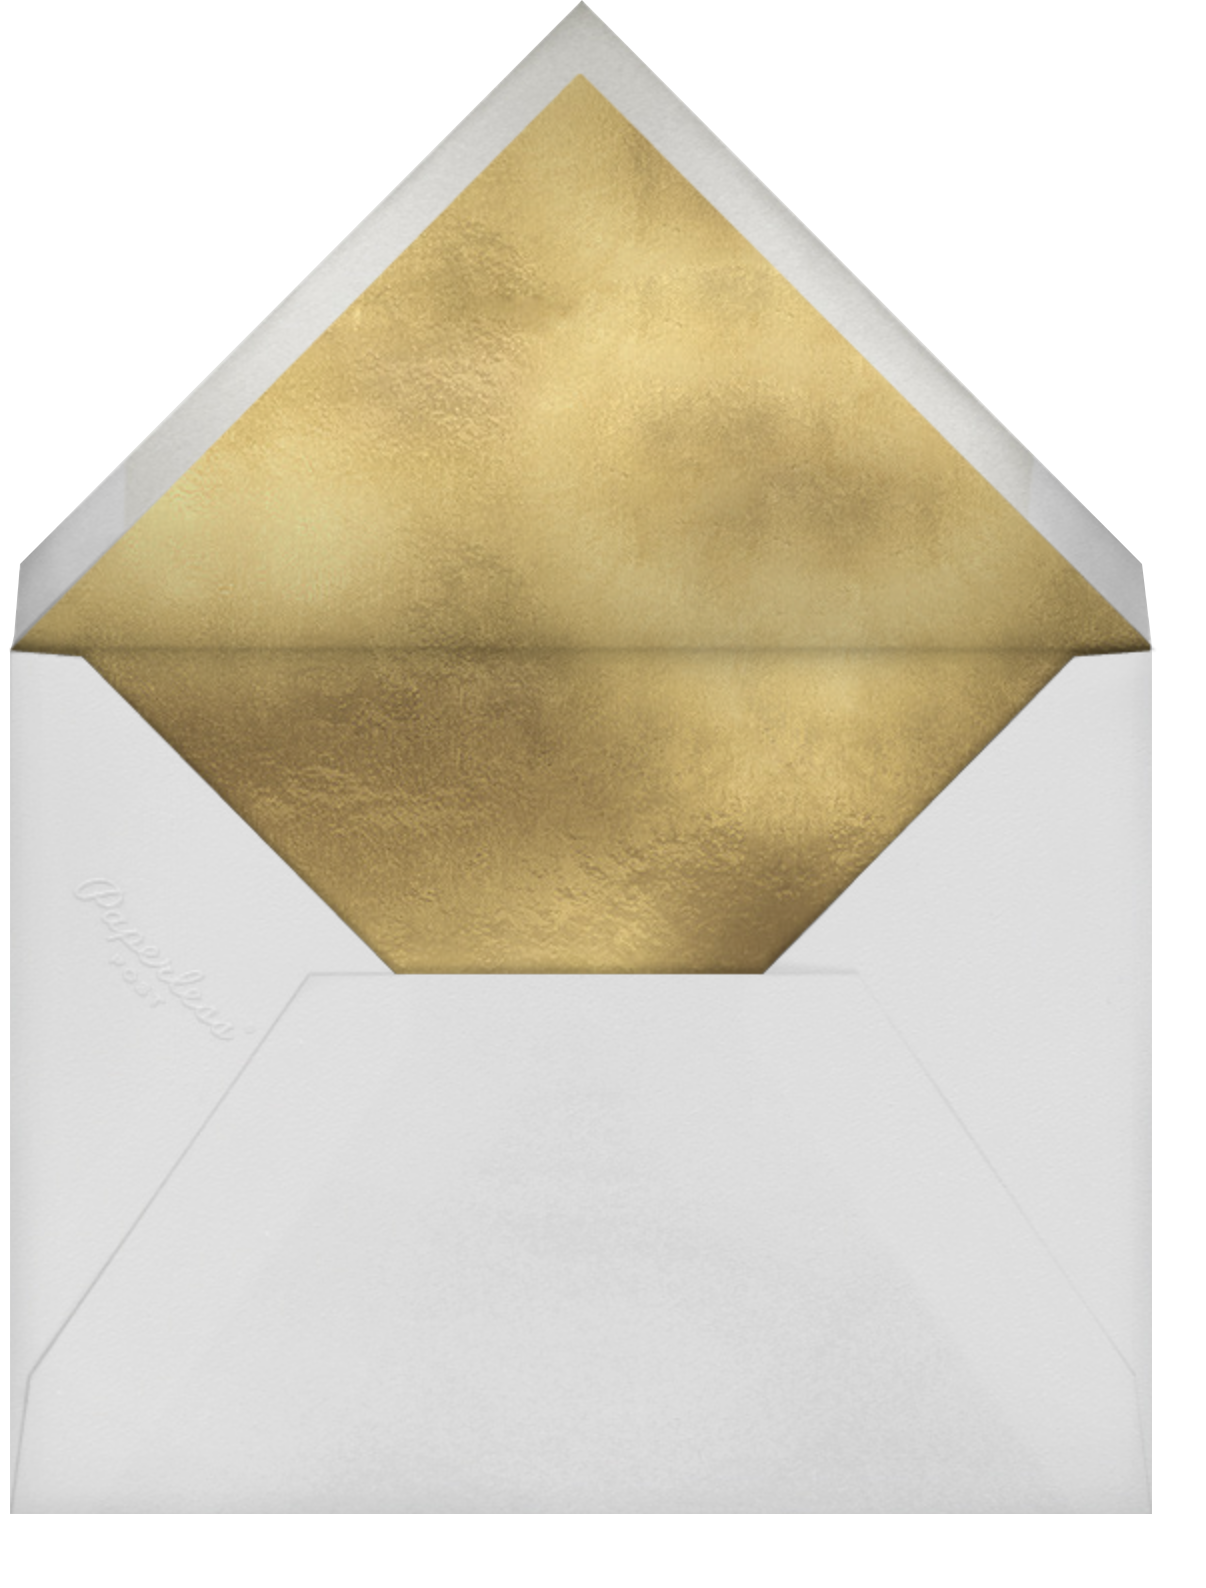 First Place - Rifle Paper Co. - Valentine's Day - envelope back